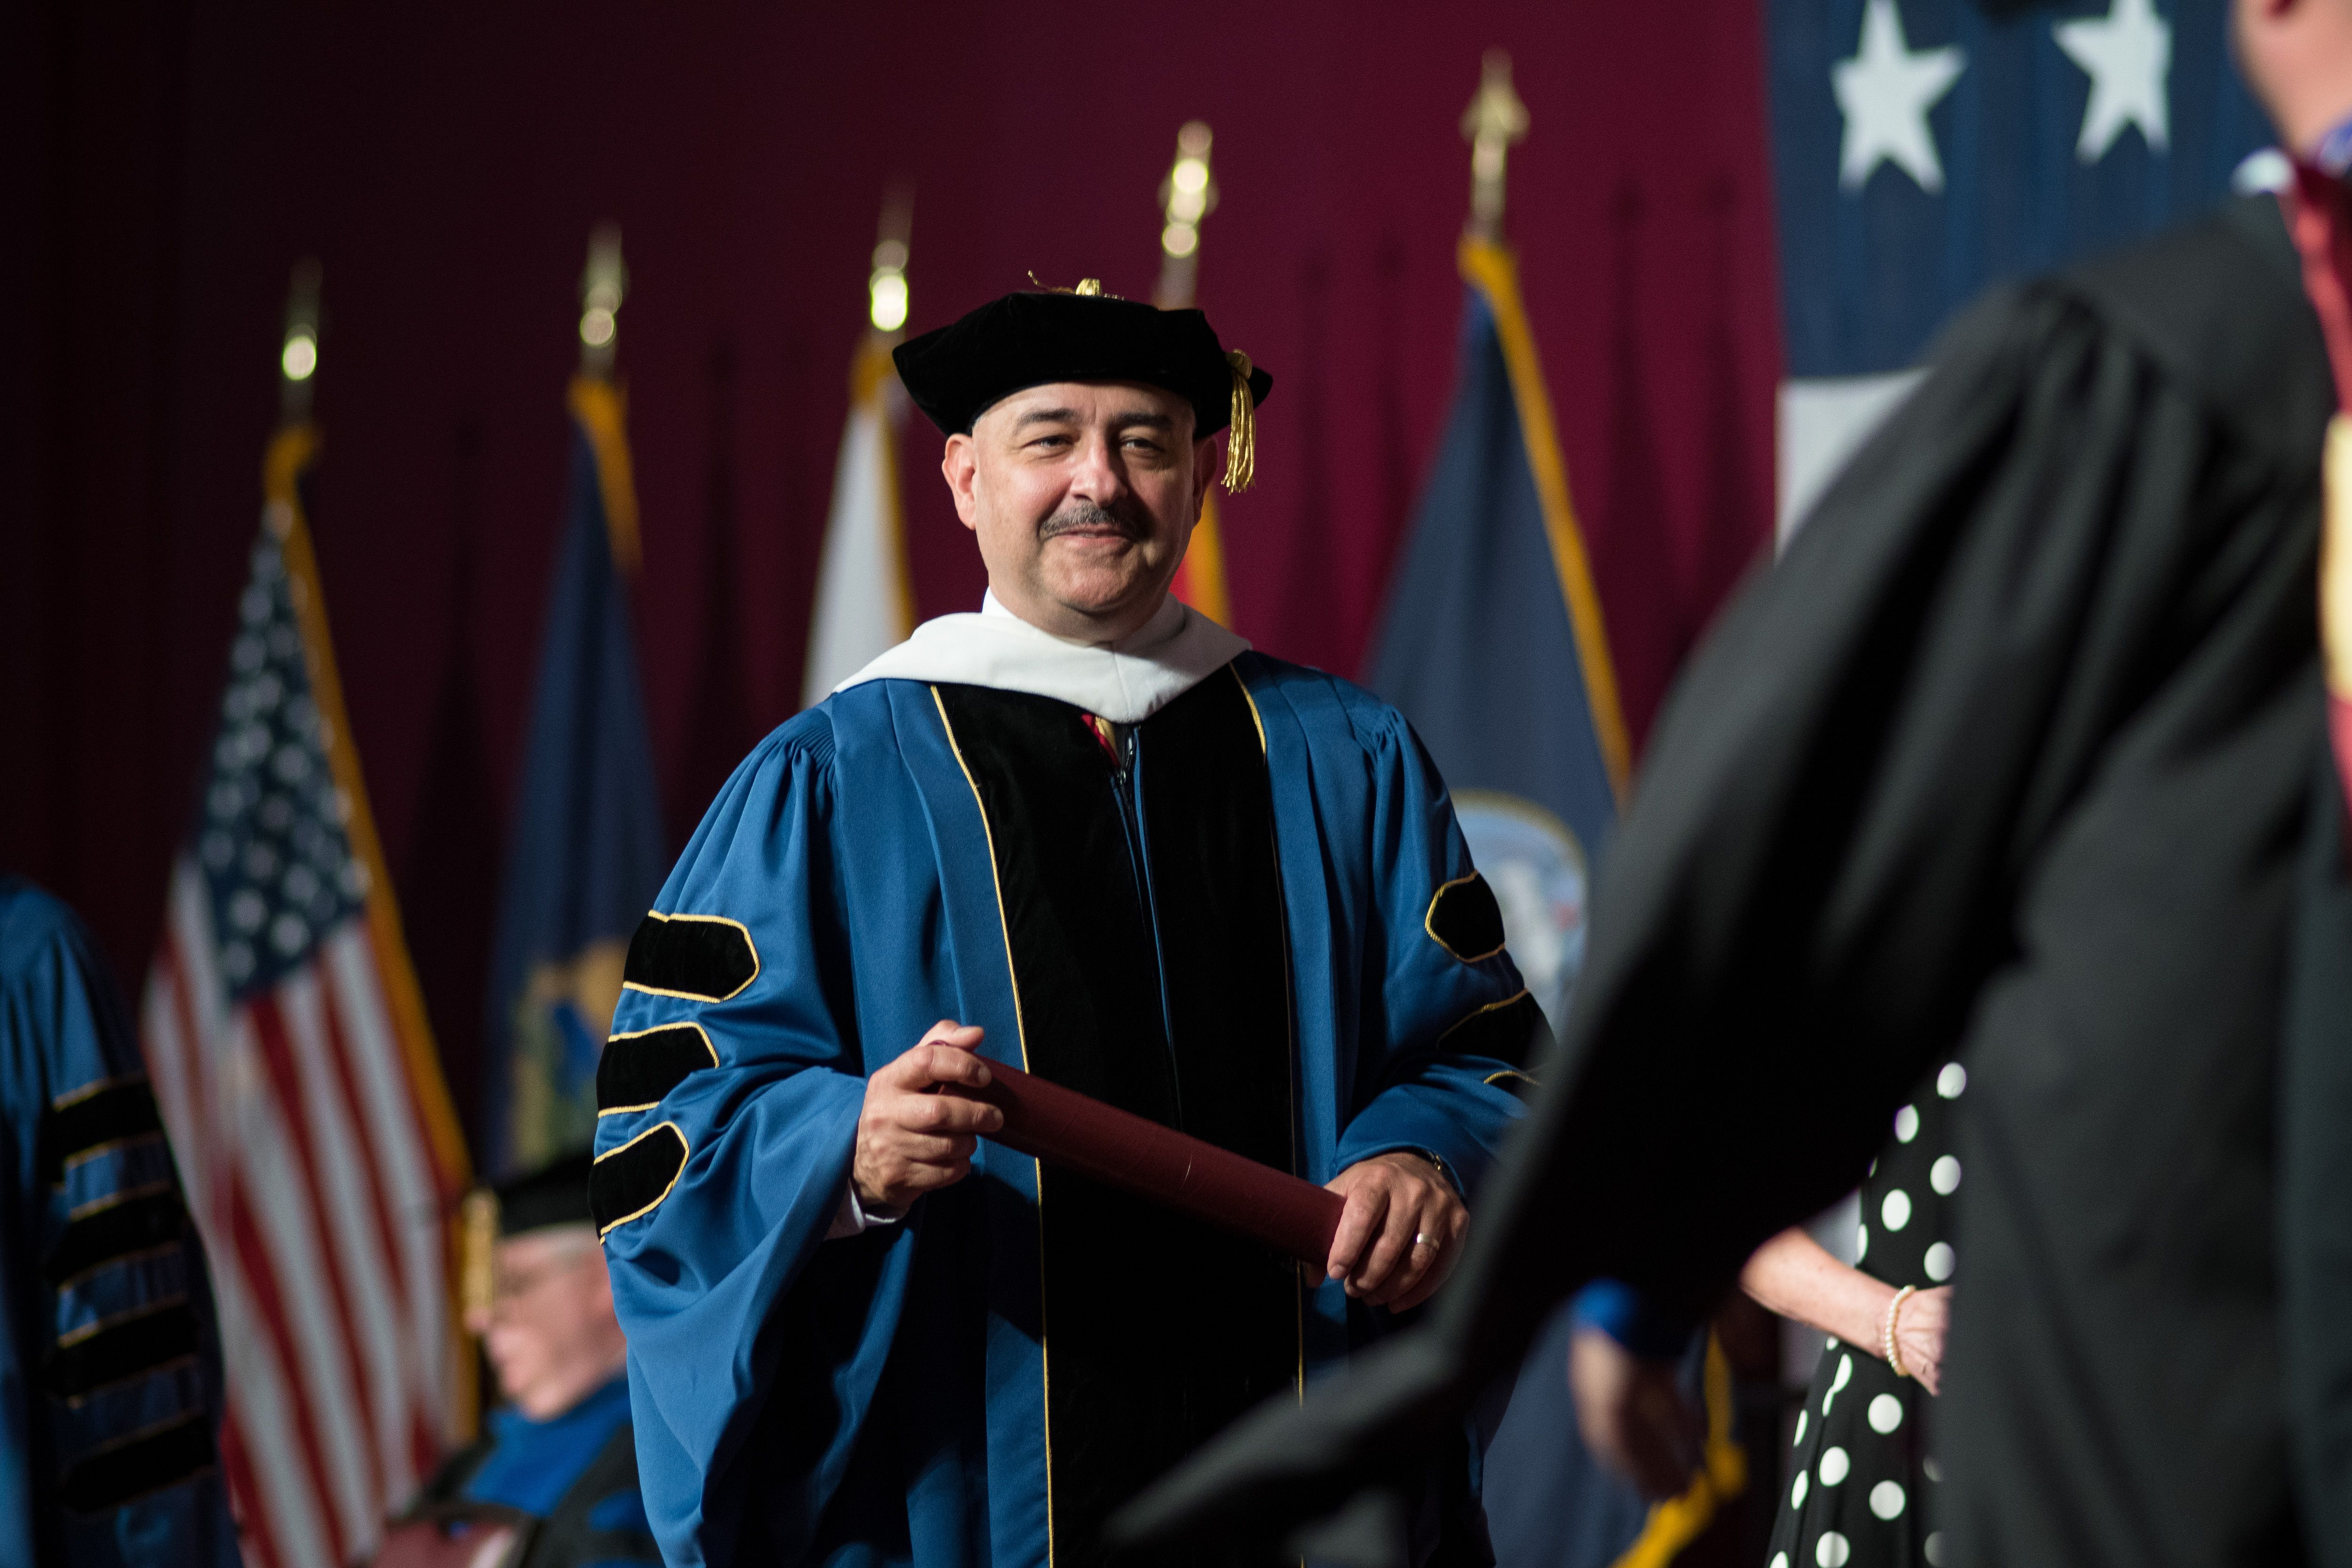 CGCS dean Bill Clements in regalia; 2019 Commencement